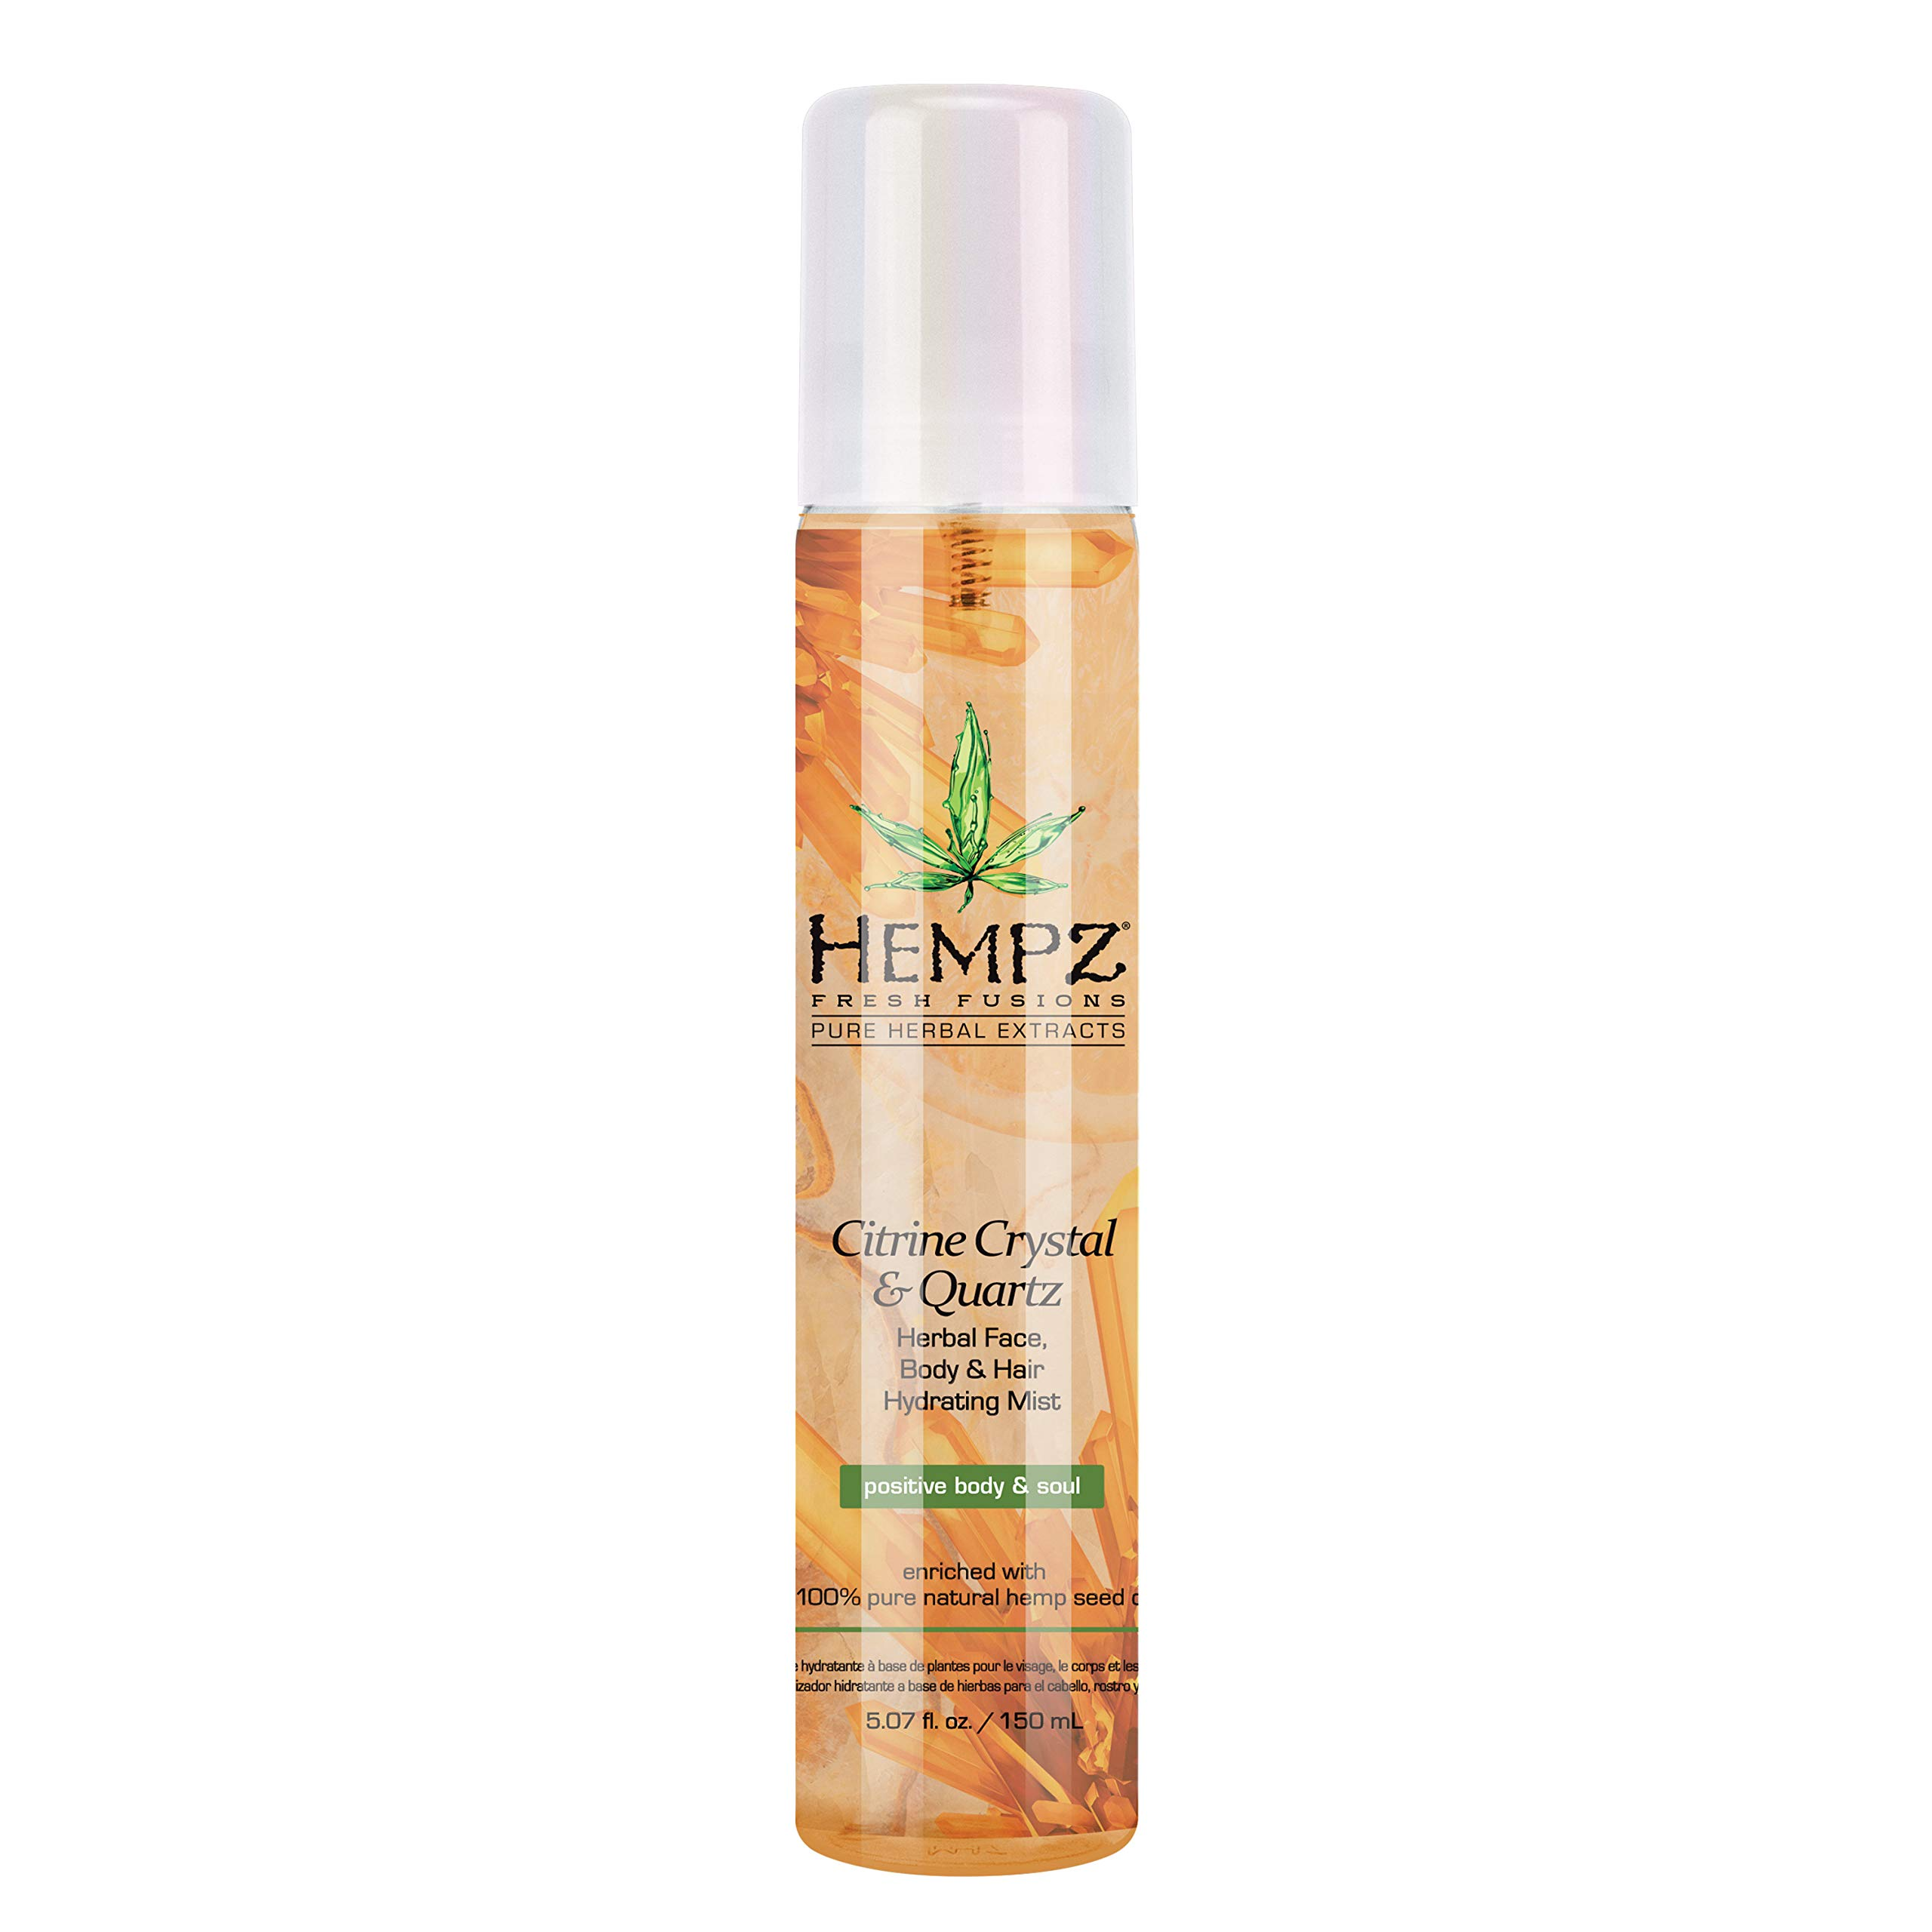 Hempz Fresh Fusions Citrine Crystal & Quartz Herbal Face, Body & Hair Hydrating Mist, 5.07 oz. - Premium, Natural Water Facial Toner with Pure Hemp Seed Oil and Citrus - Calming Face Spray for Women by Hempz